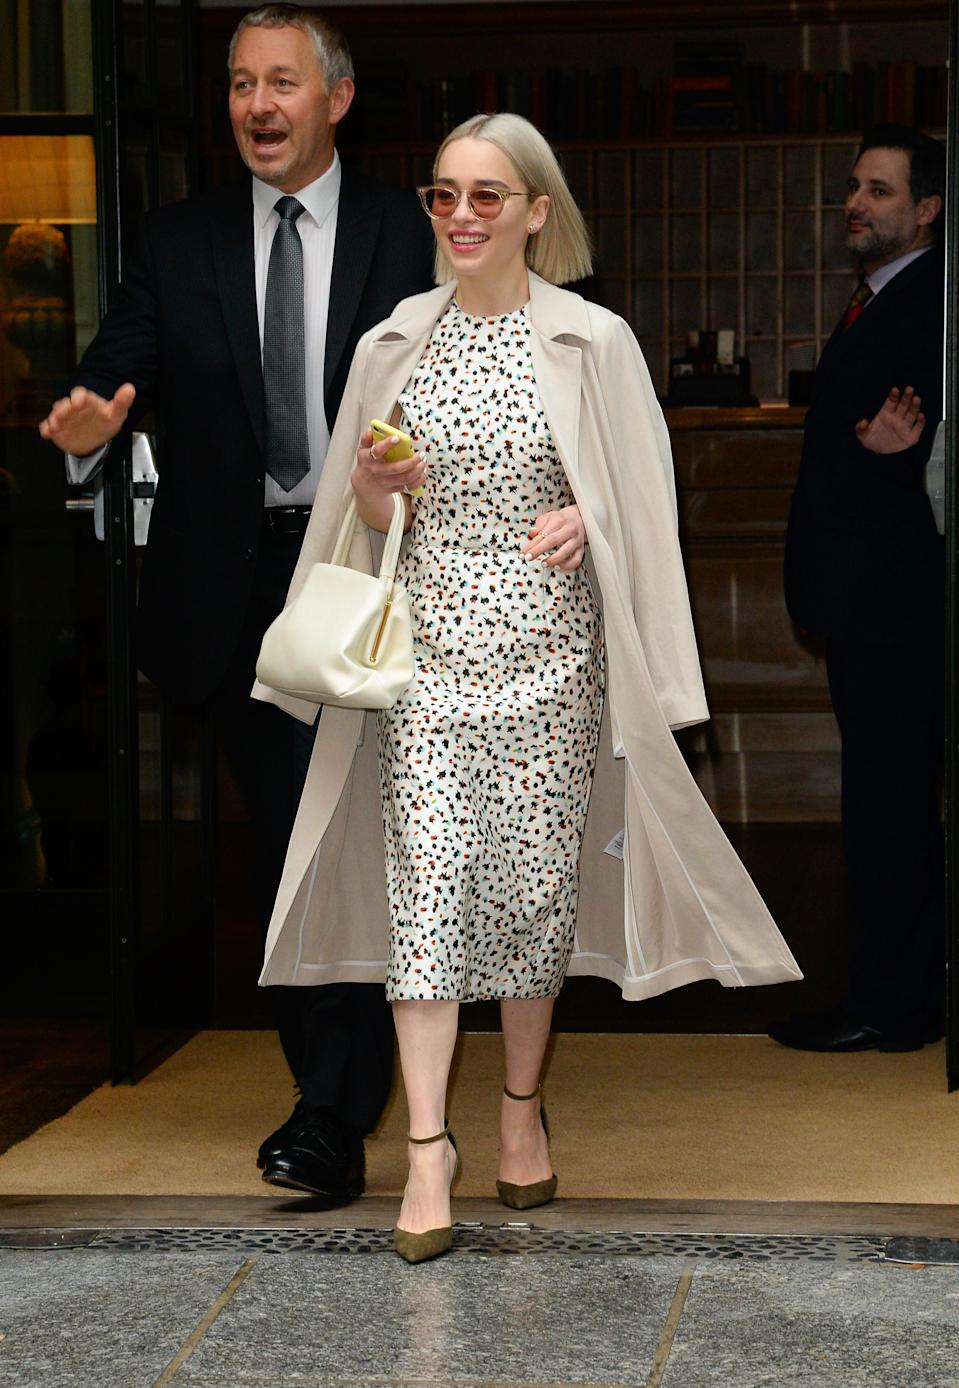 <p>Emilia looked oh-too chic in a polka dot dress with vream coat and accessories as she headed to make an appearance on 'Good Morning America'. <em>[Photo: Getty]</em> </p>